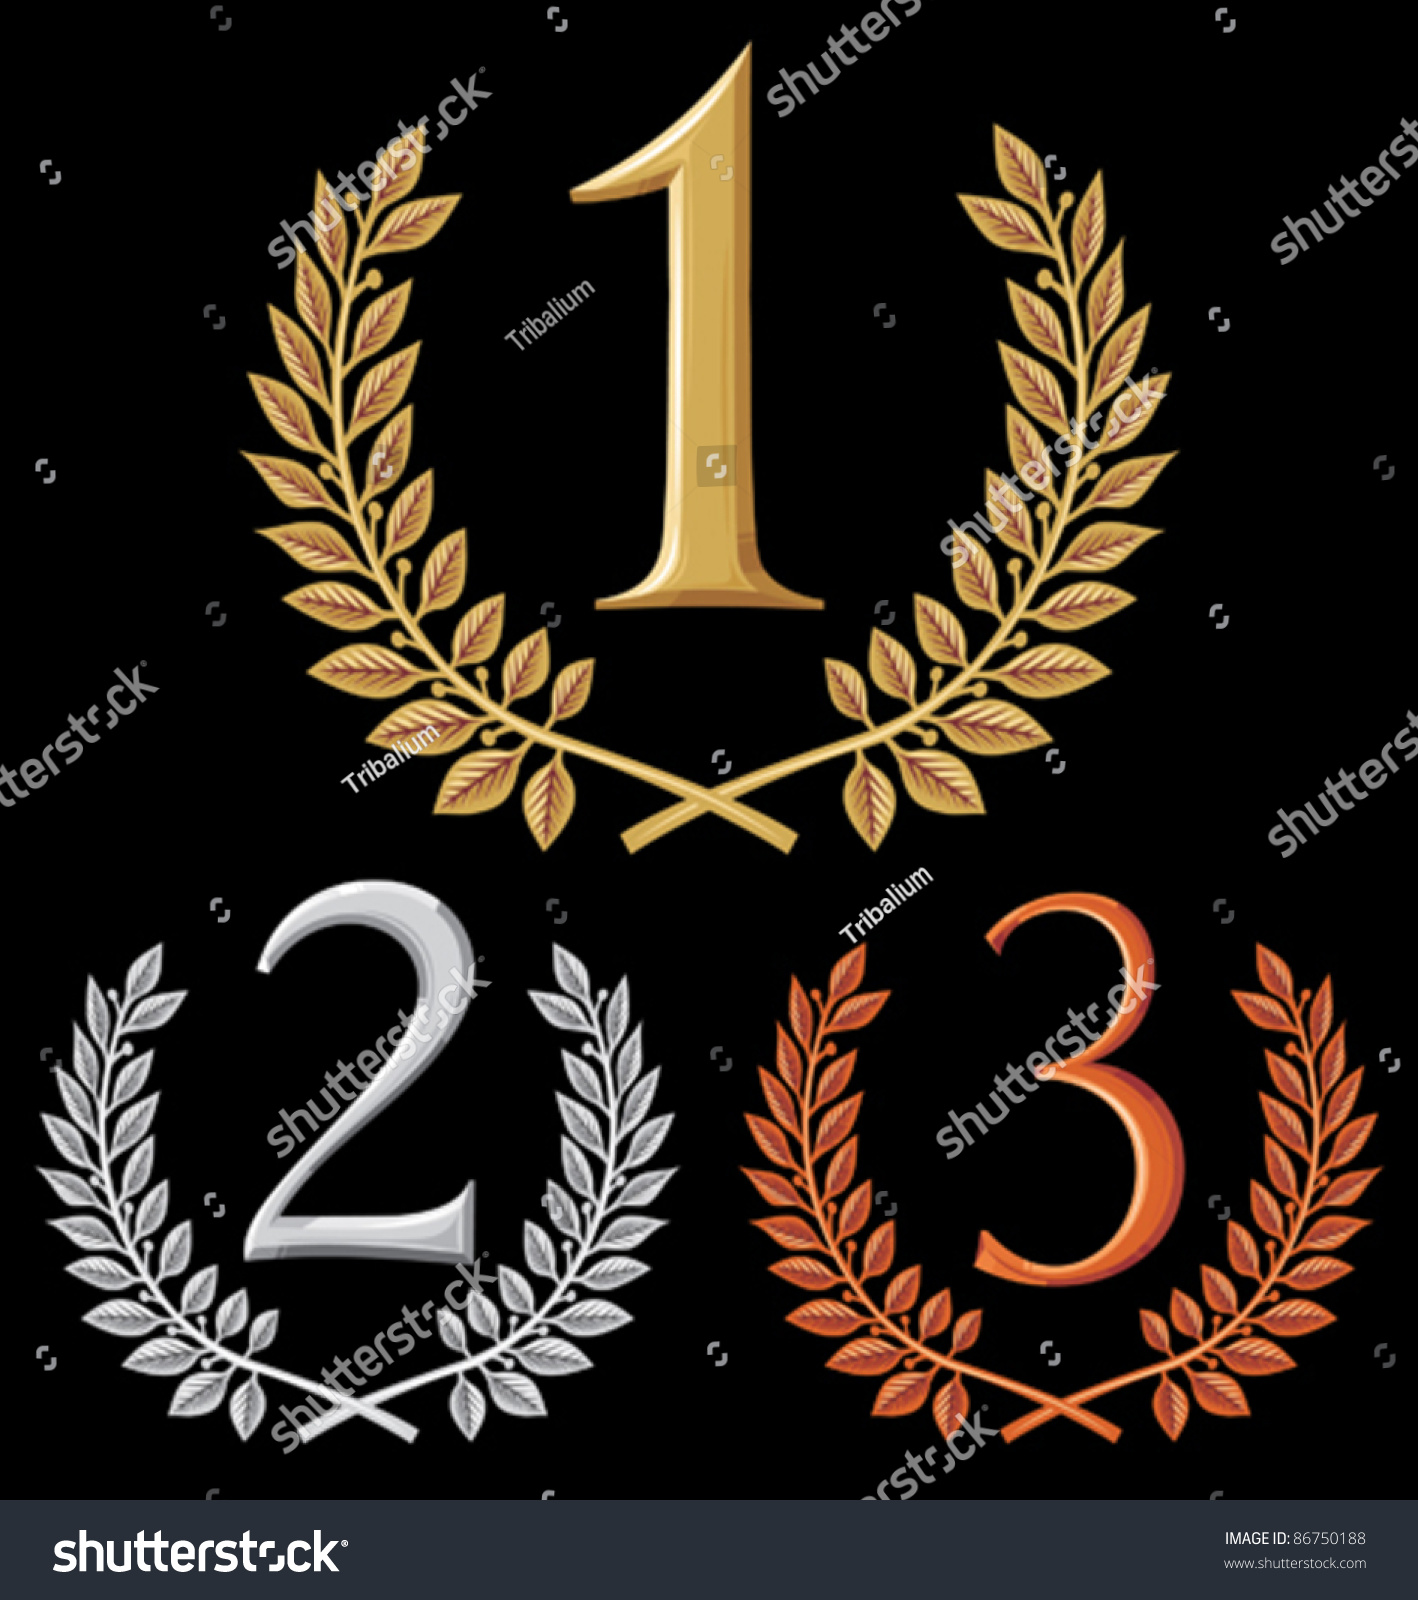 First Second Third Place Set Gold Stock Vector Royalty Free